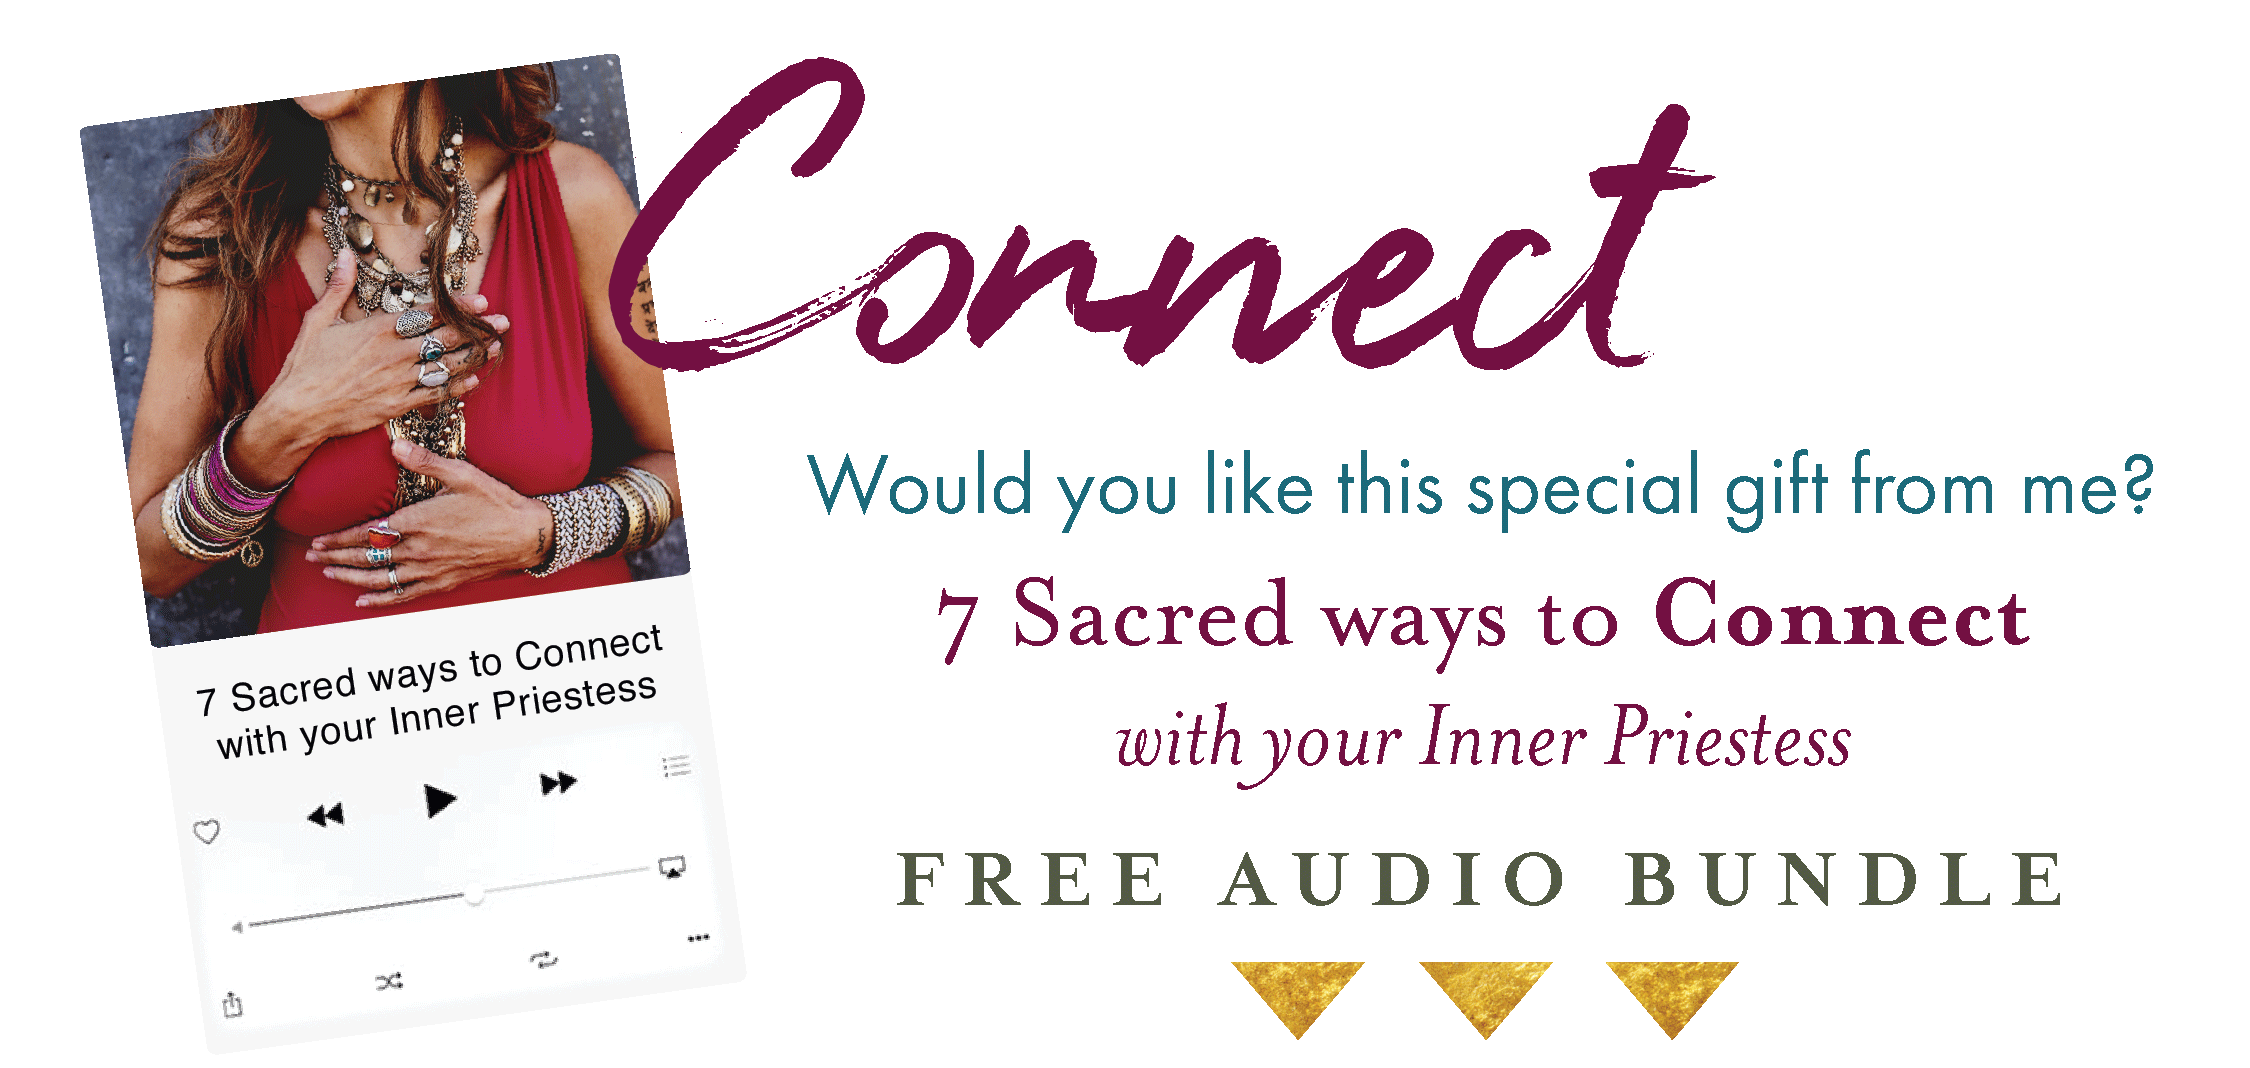 Connect 7 sacred ways to connect with your inner priestess free audio bundle from Priestess Rising